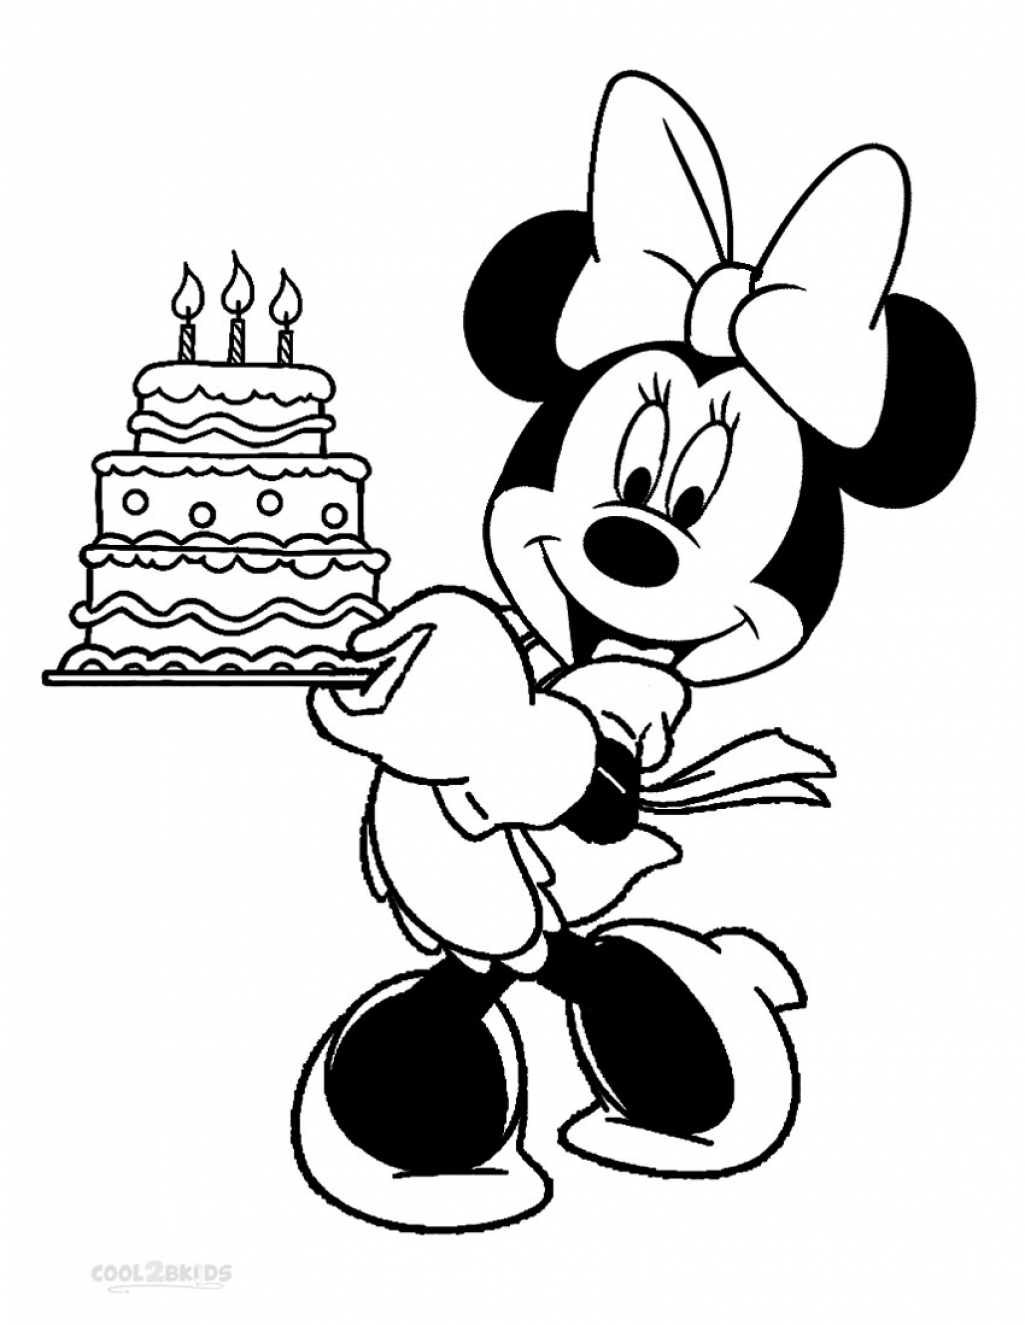 free mickey mouse coloring pages - free disney minnie mouse coloring pages